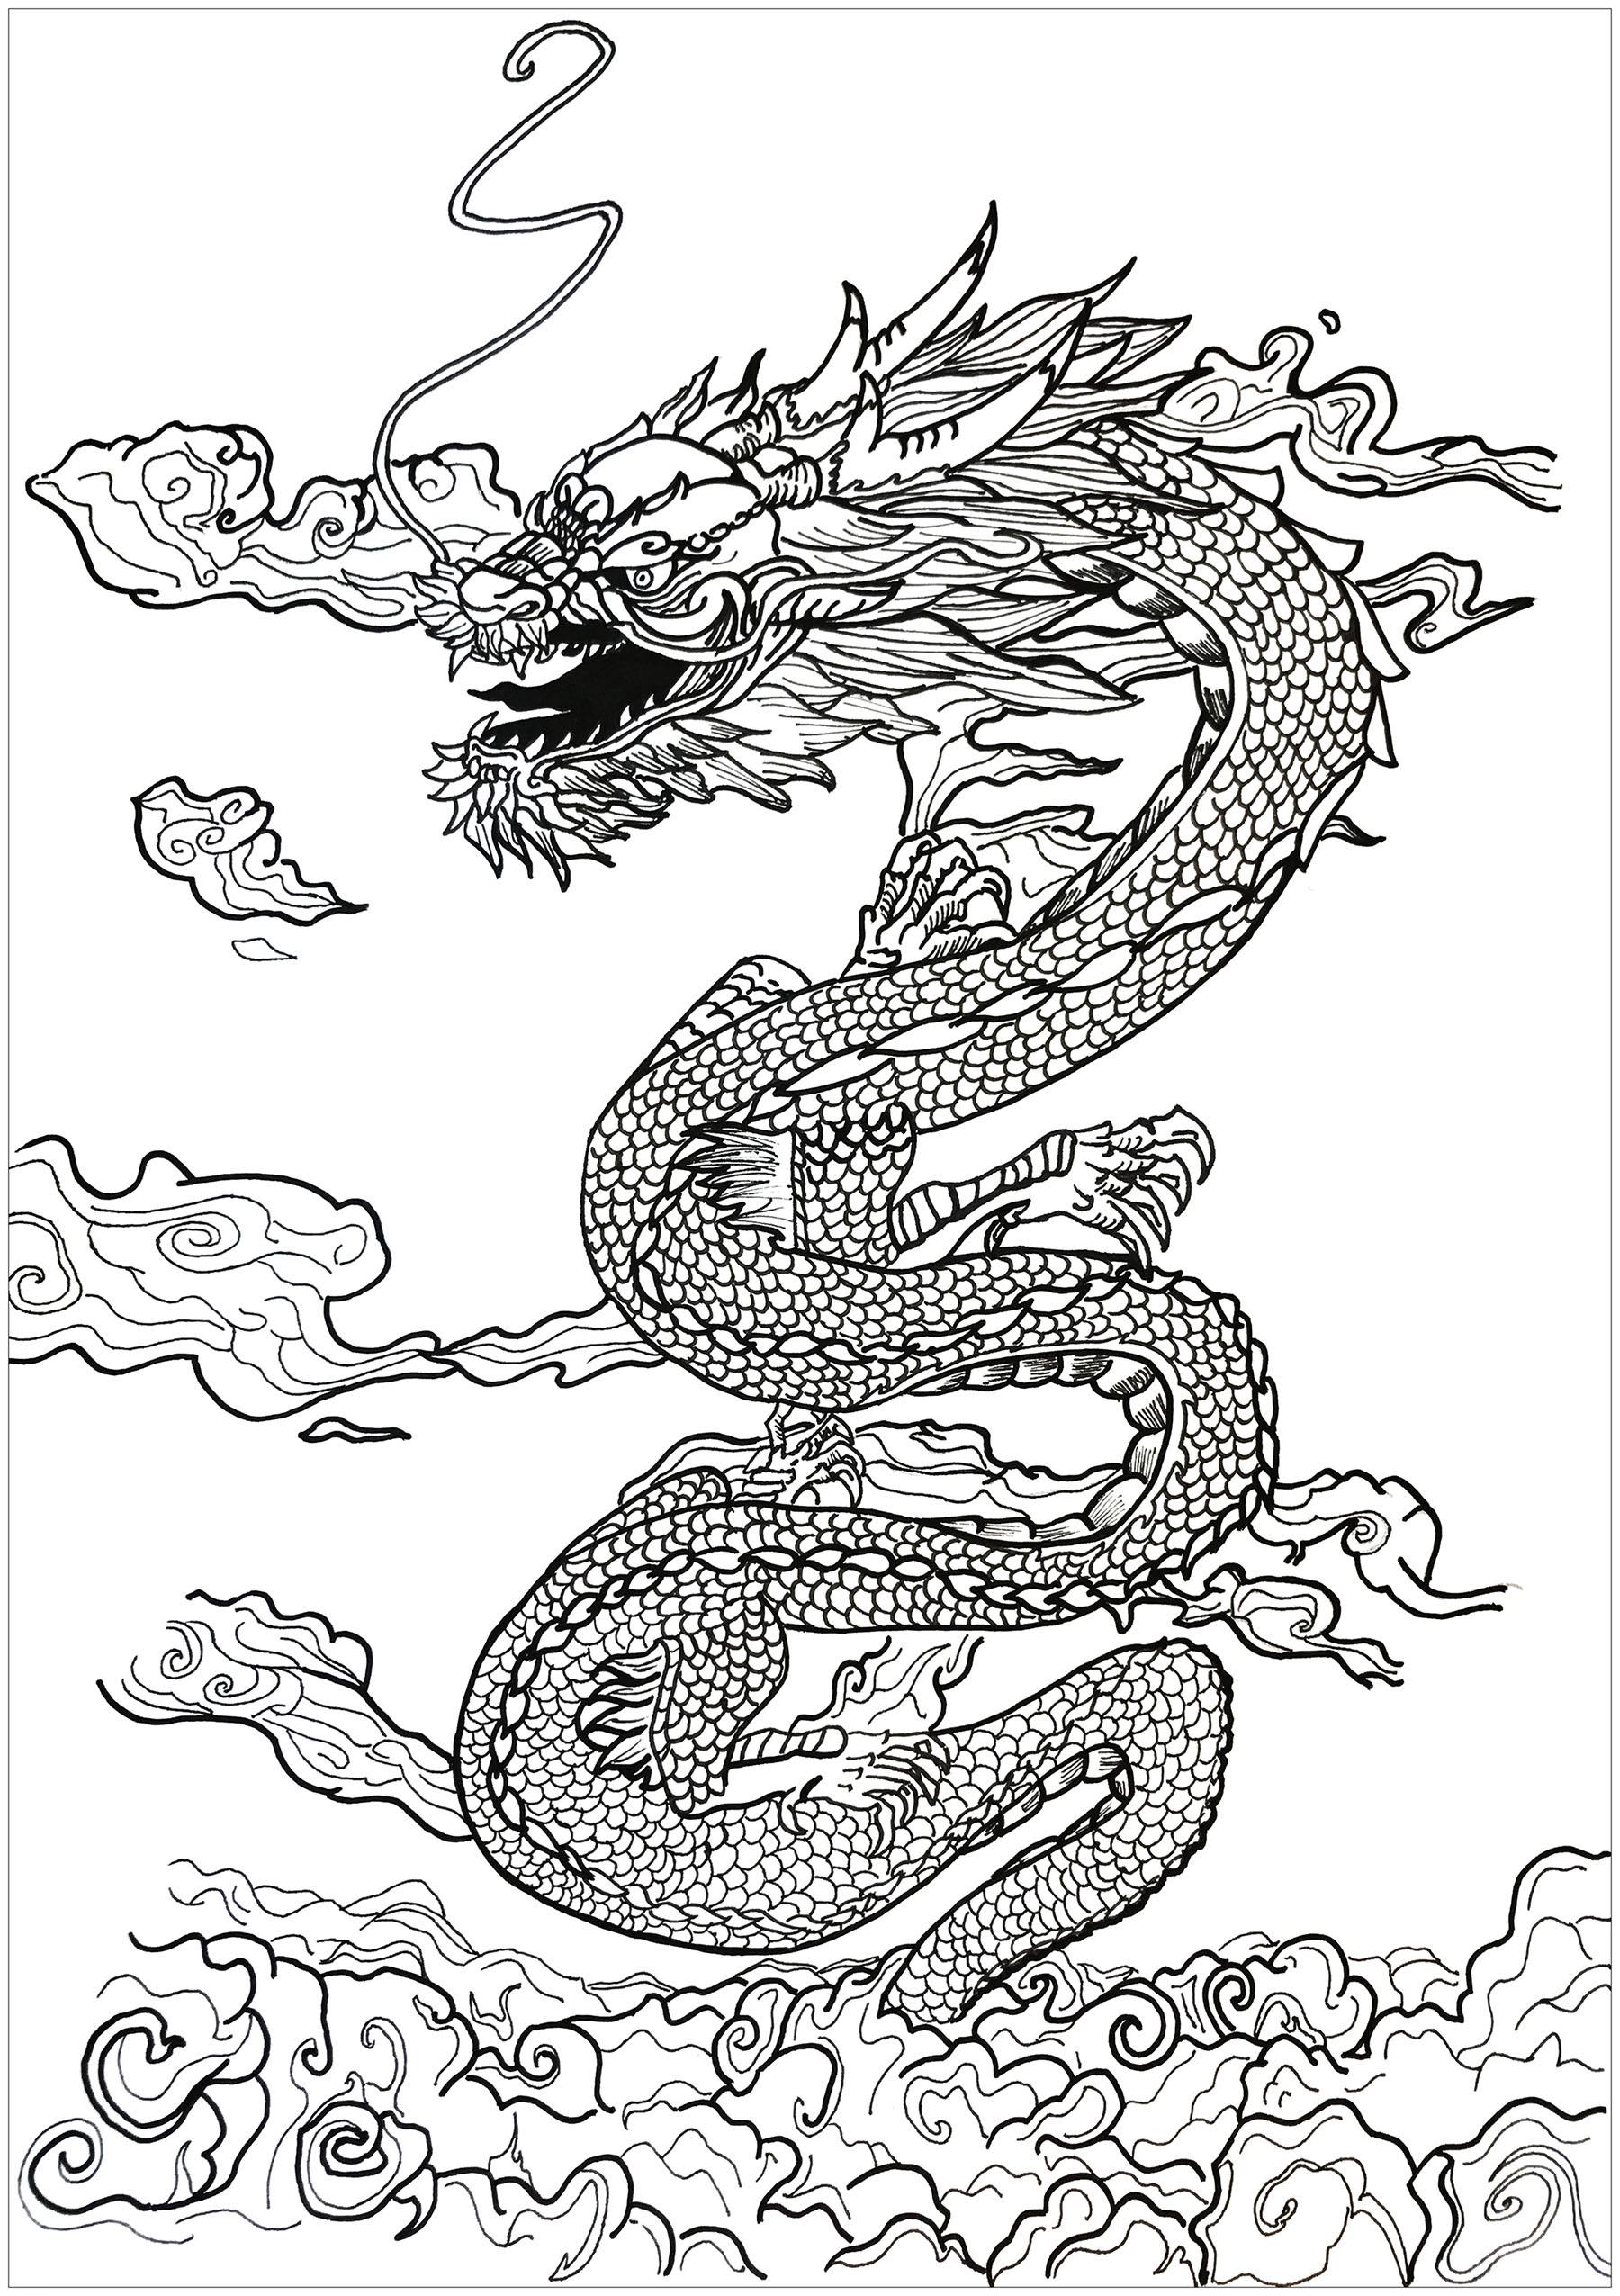 Dragon Asian Inspiration Valentin Coloring Pages For Adults